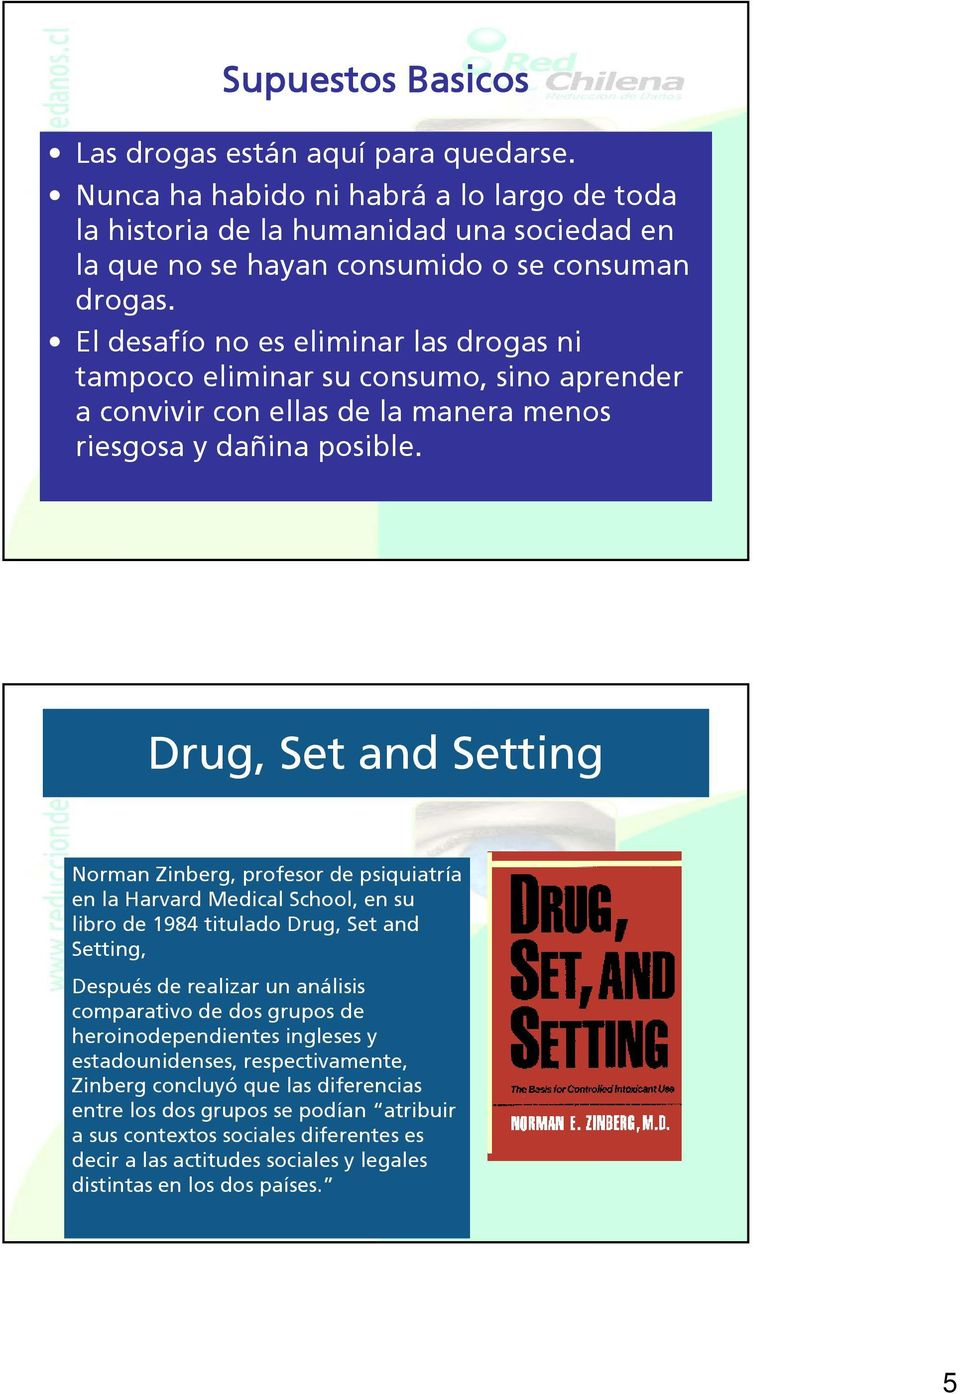 Drug, Set and Setting Norman Zinberg, profesor de psiquiatría en la Harvard Medical School, en su libro de 1984 titulado Drug, Set and Setting, Después de realizar un análisis comparativo de dos